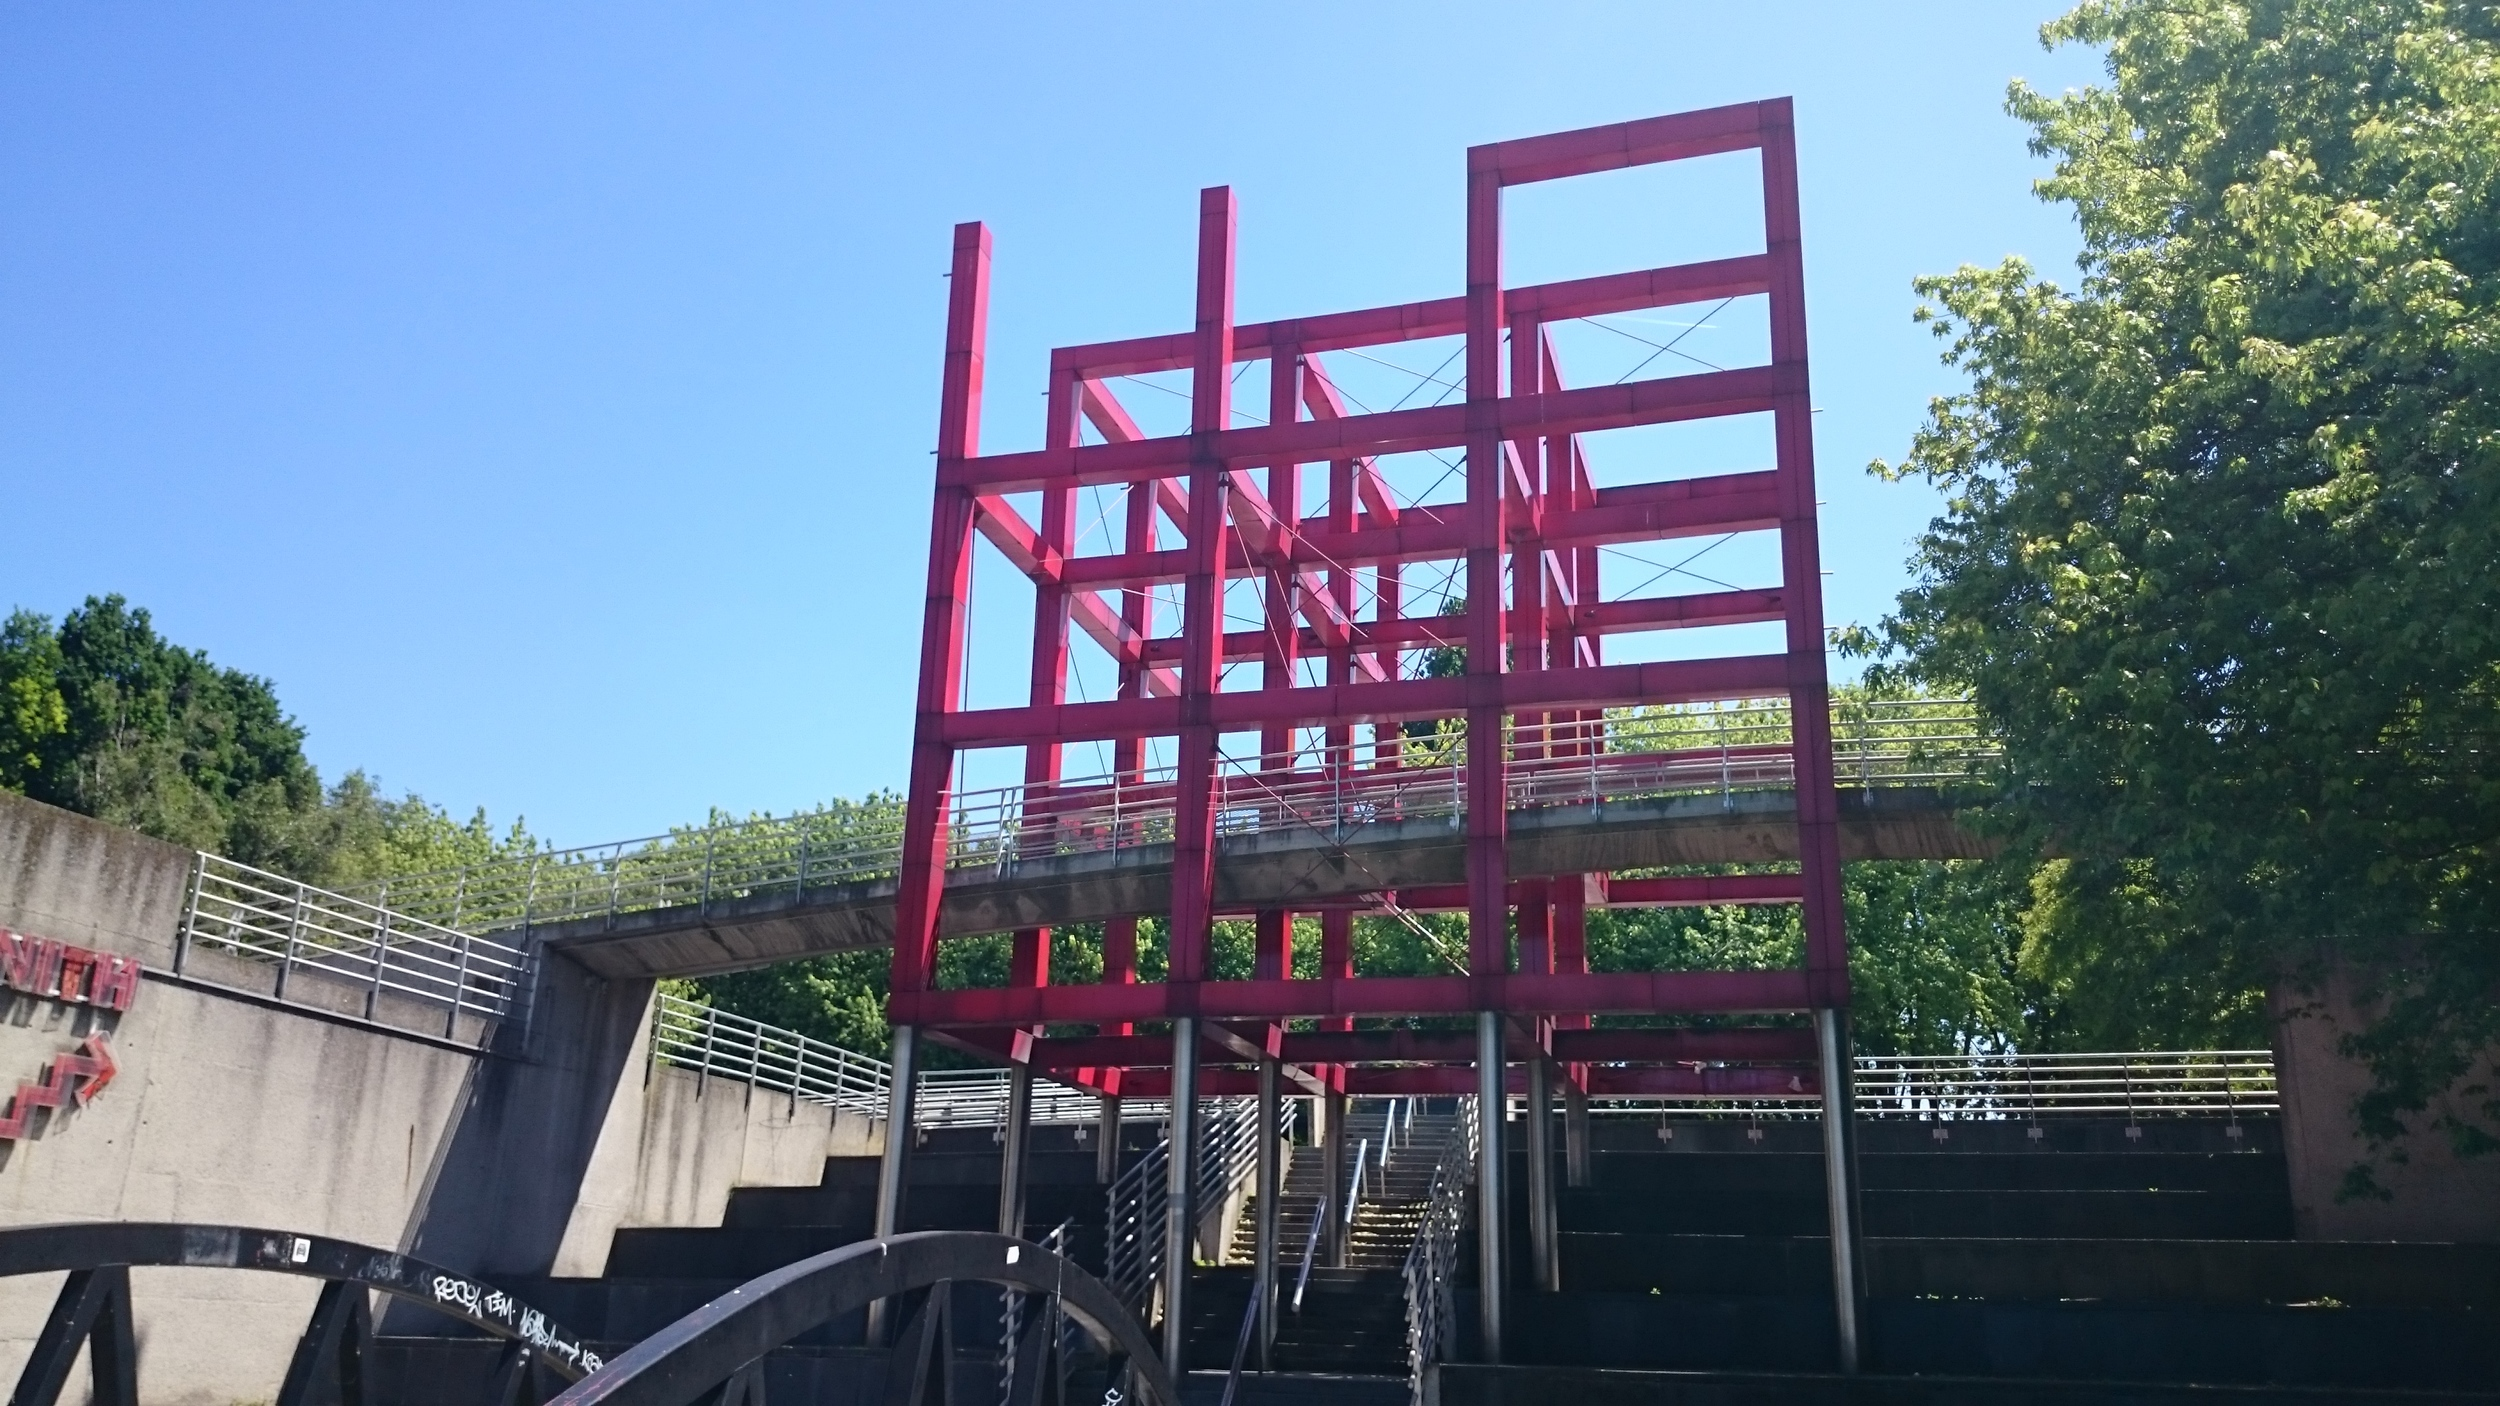 Red Structures by bernard Tschumi